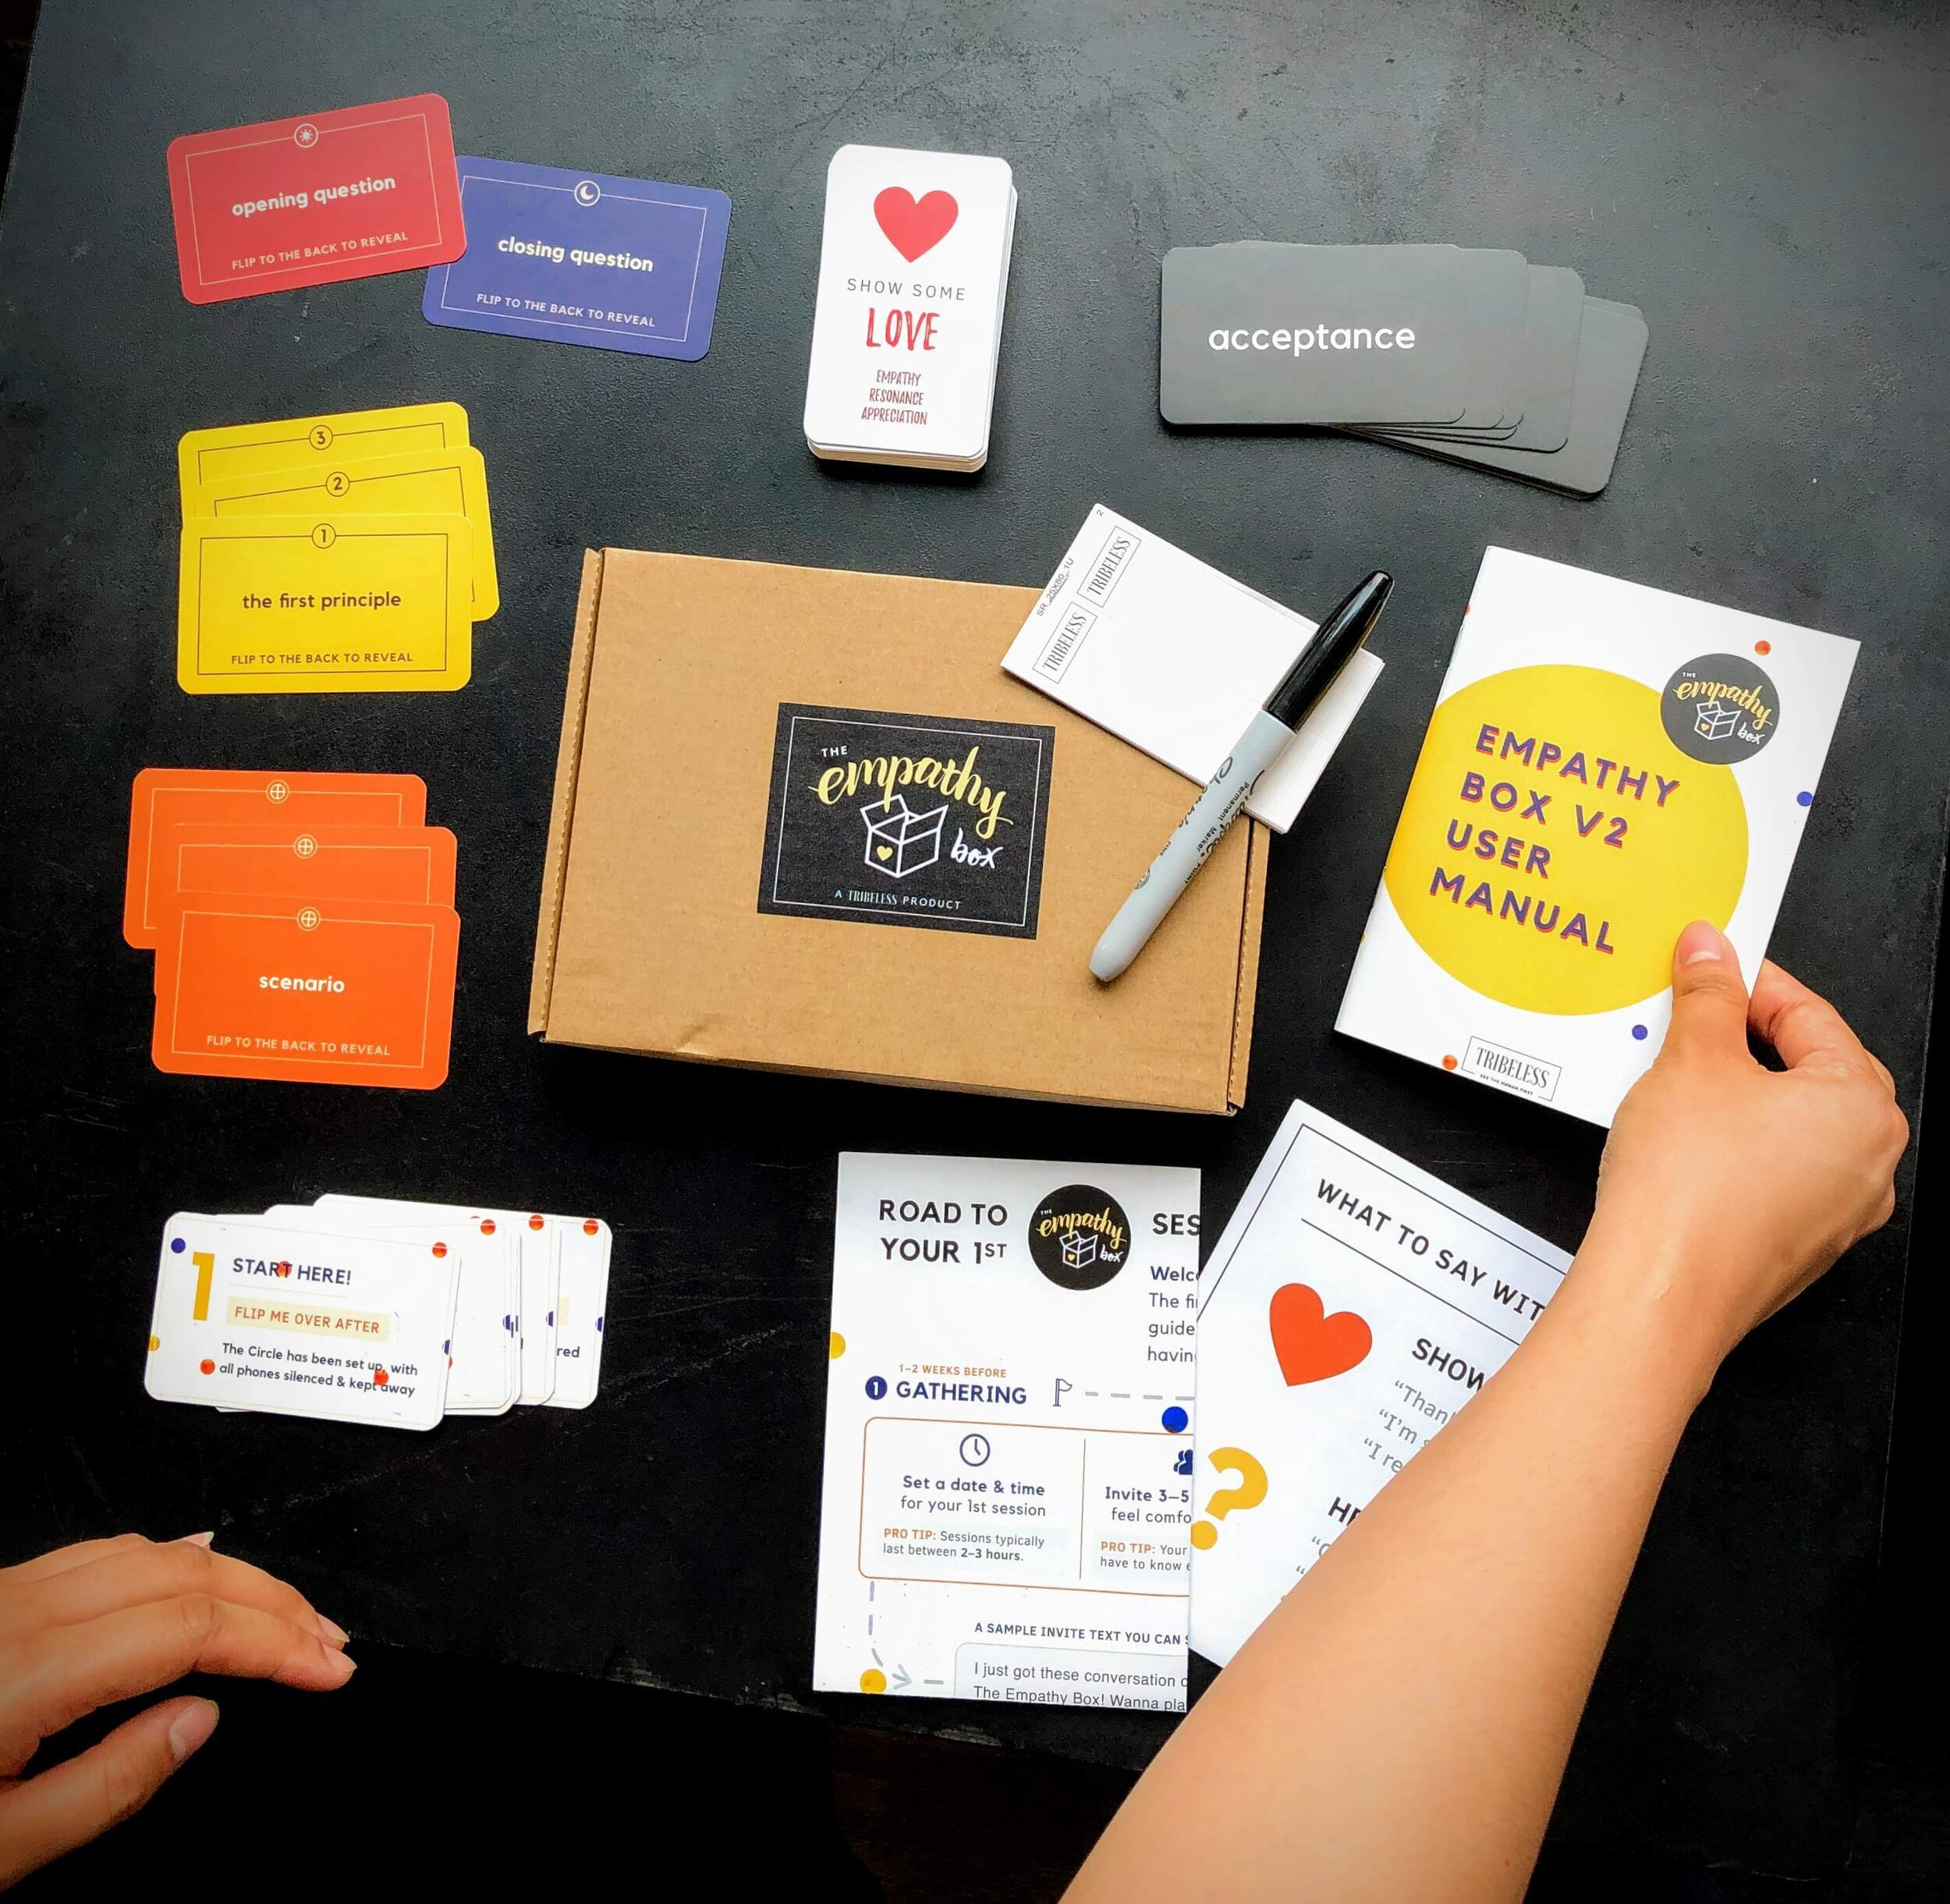 What's in Empathy Box Version 2.0?